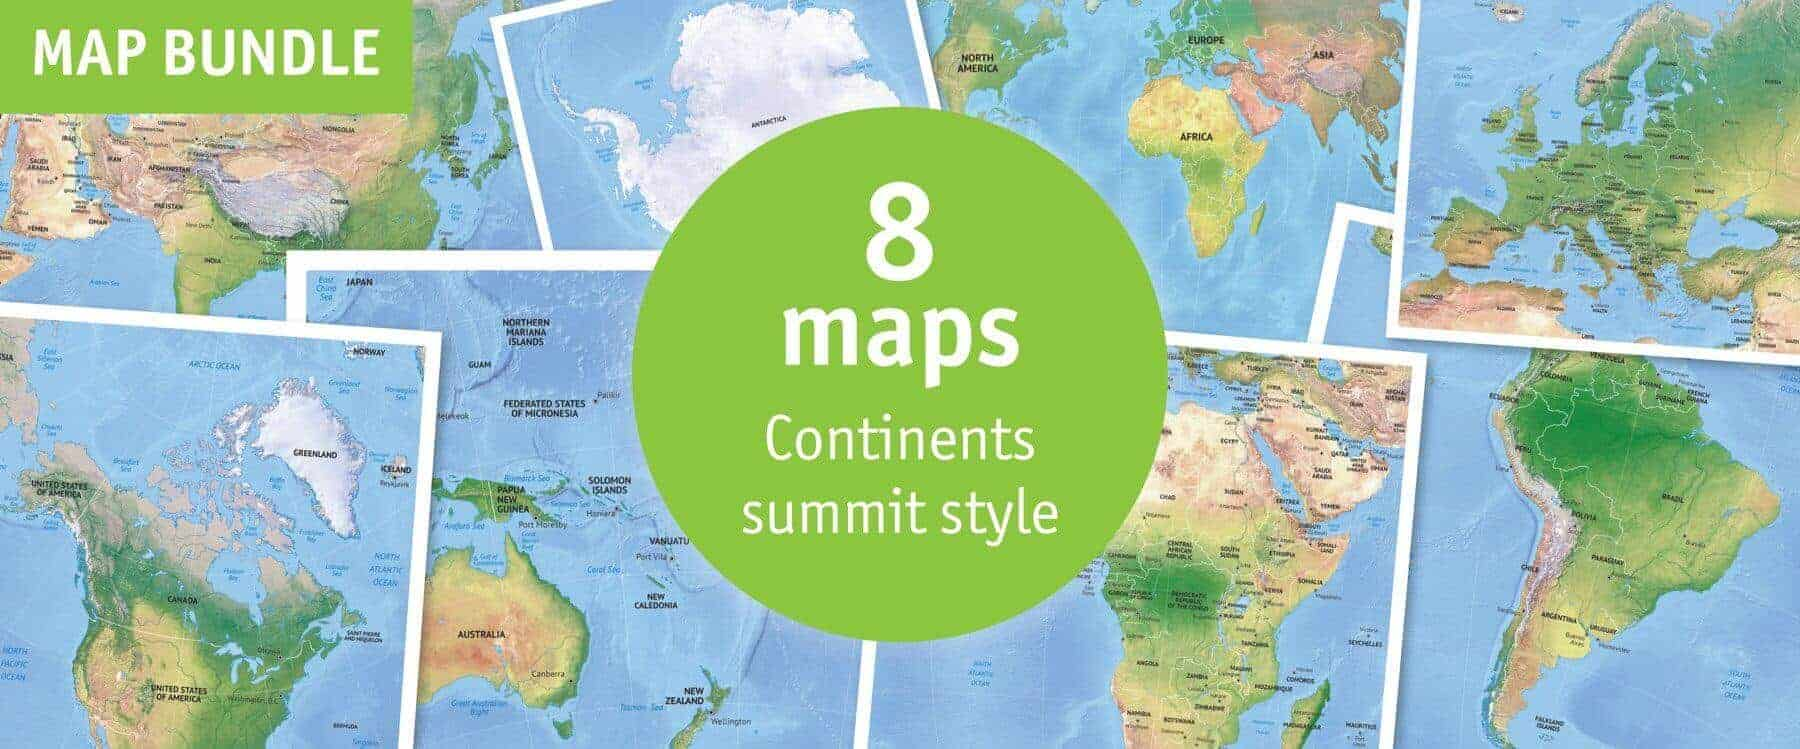 Vector map world relief continents political one stop map map bundle continents political summit style gumiabroncs